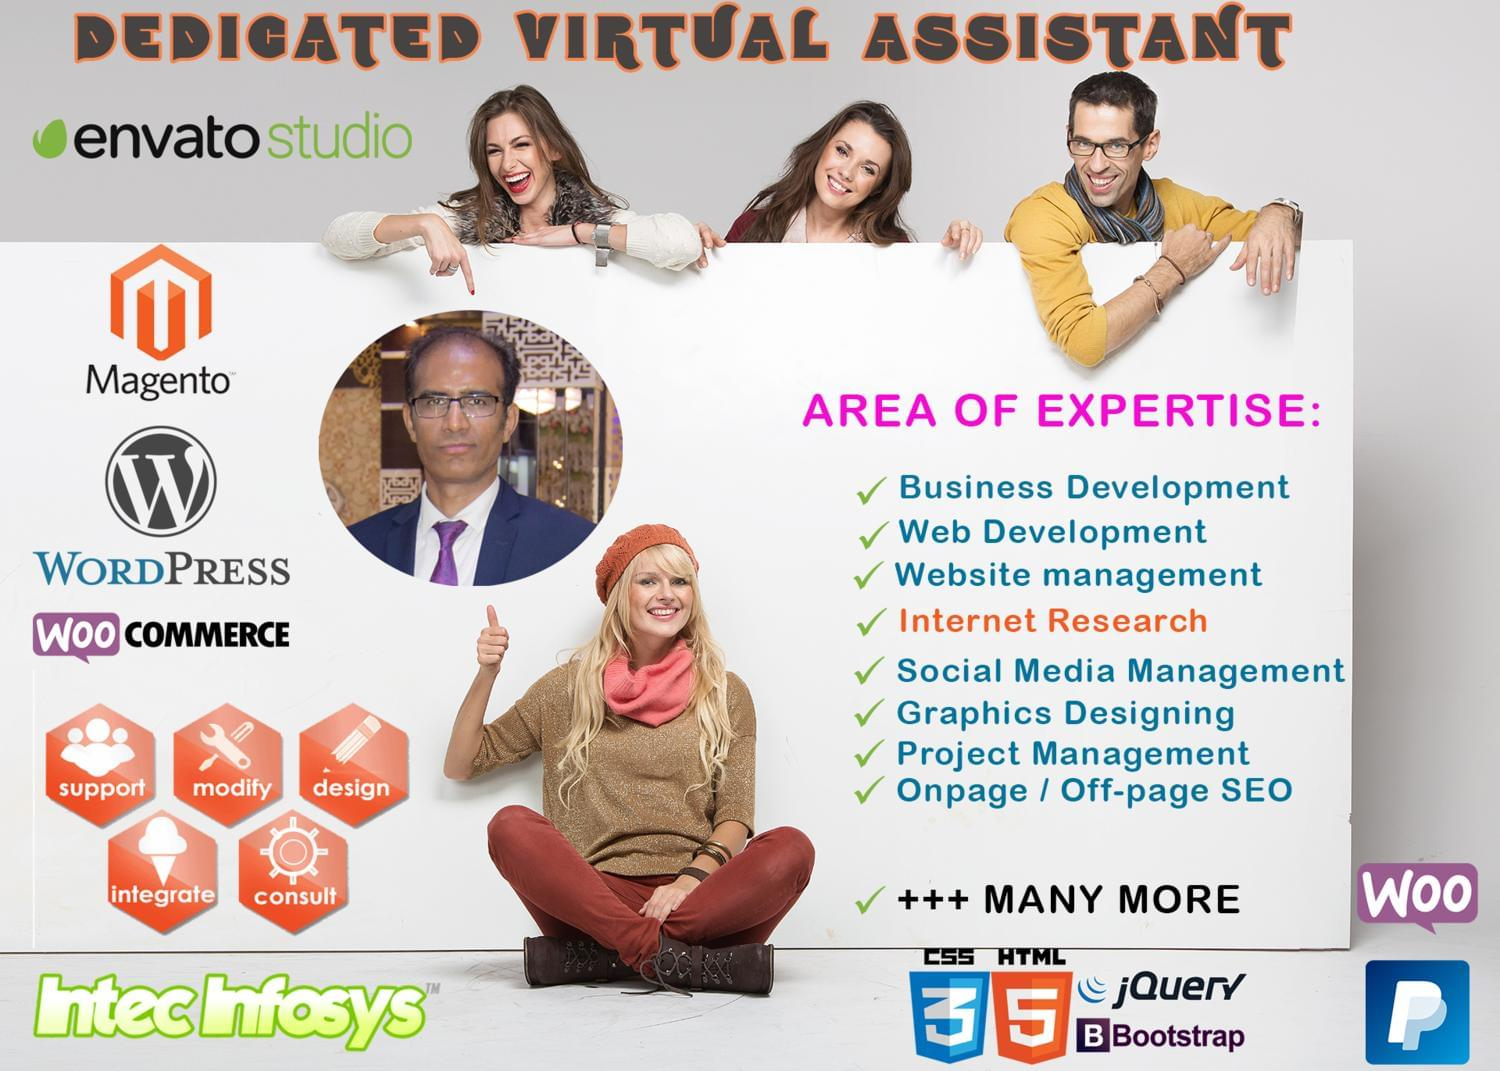 Your Personal Virtual Assistant for Web Development, SEO, eCommerce by intecinfosys - 114255